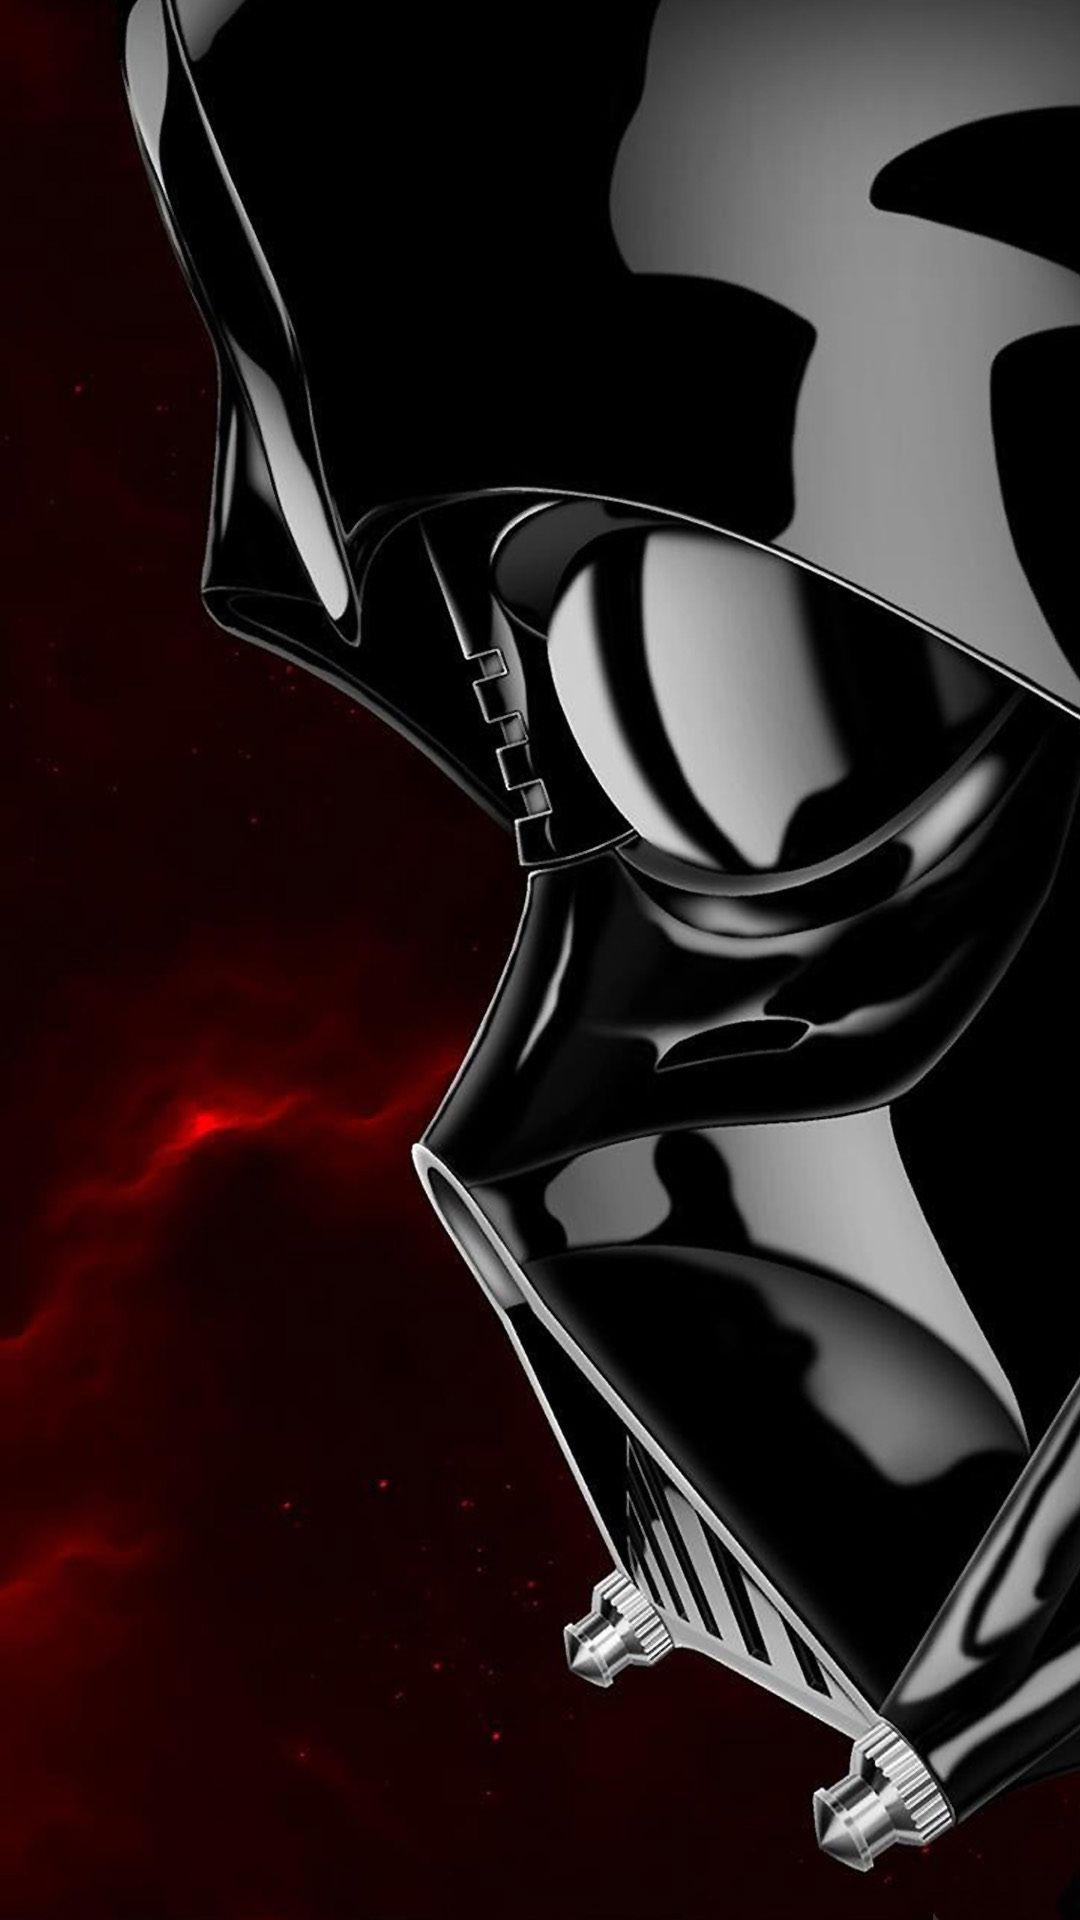 darth vader star wars star wars illustration #iphone #7 #wallpaper